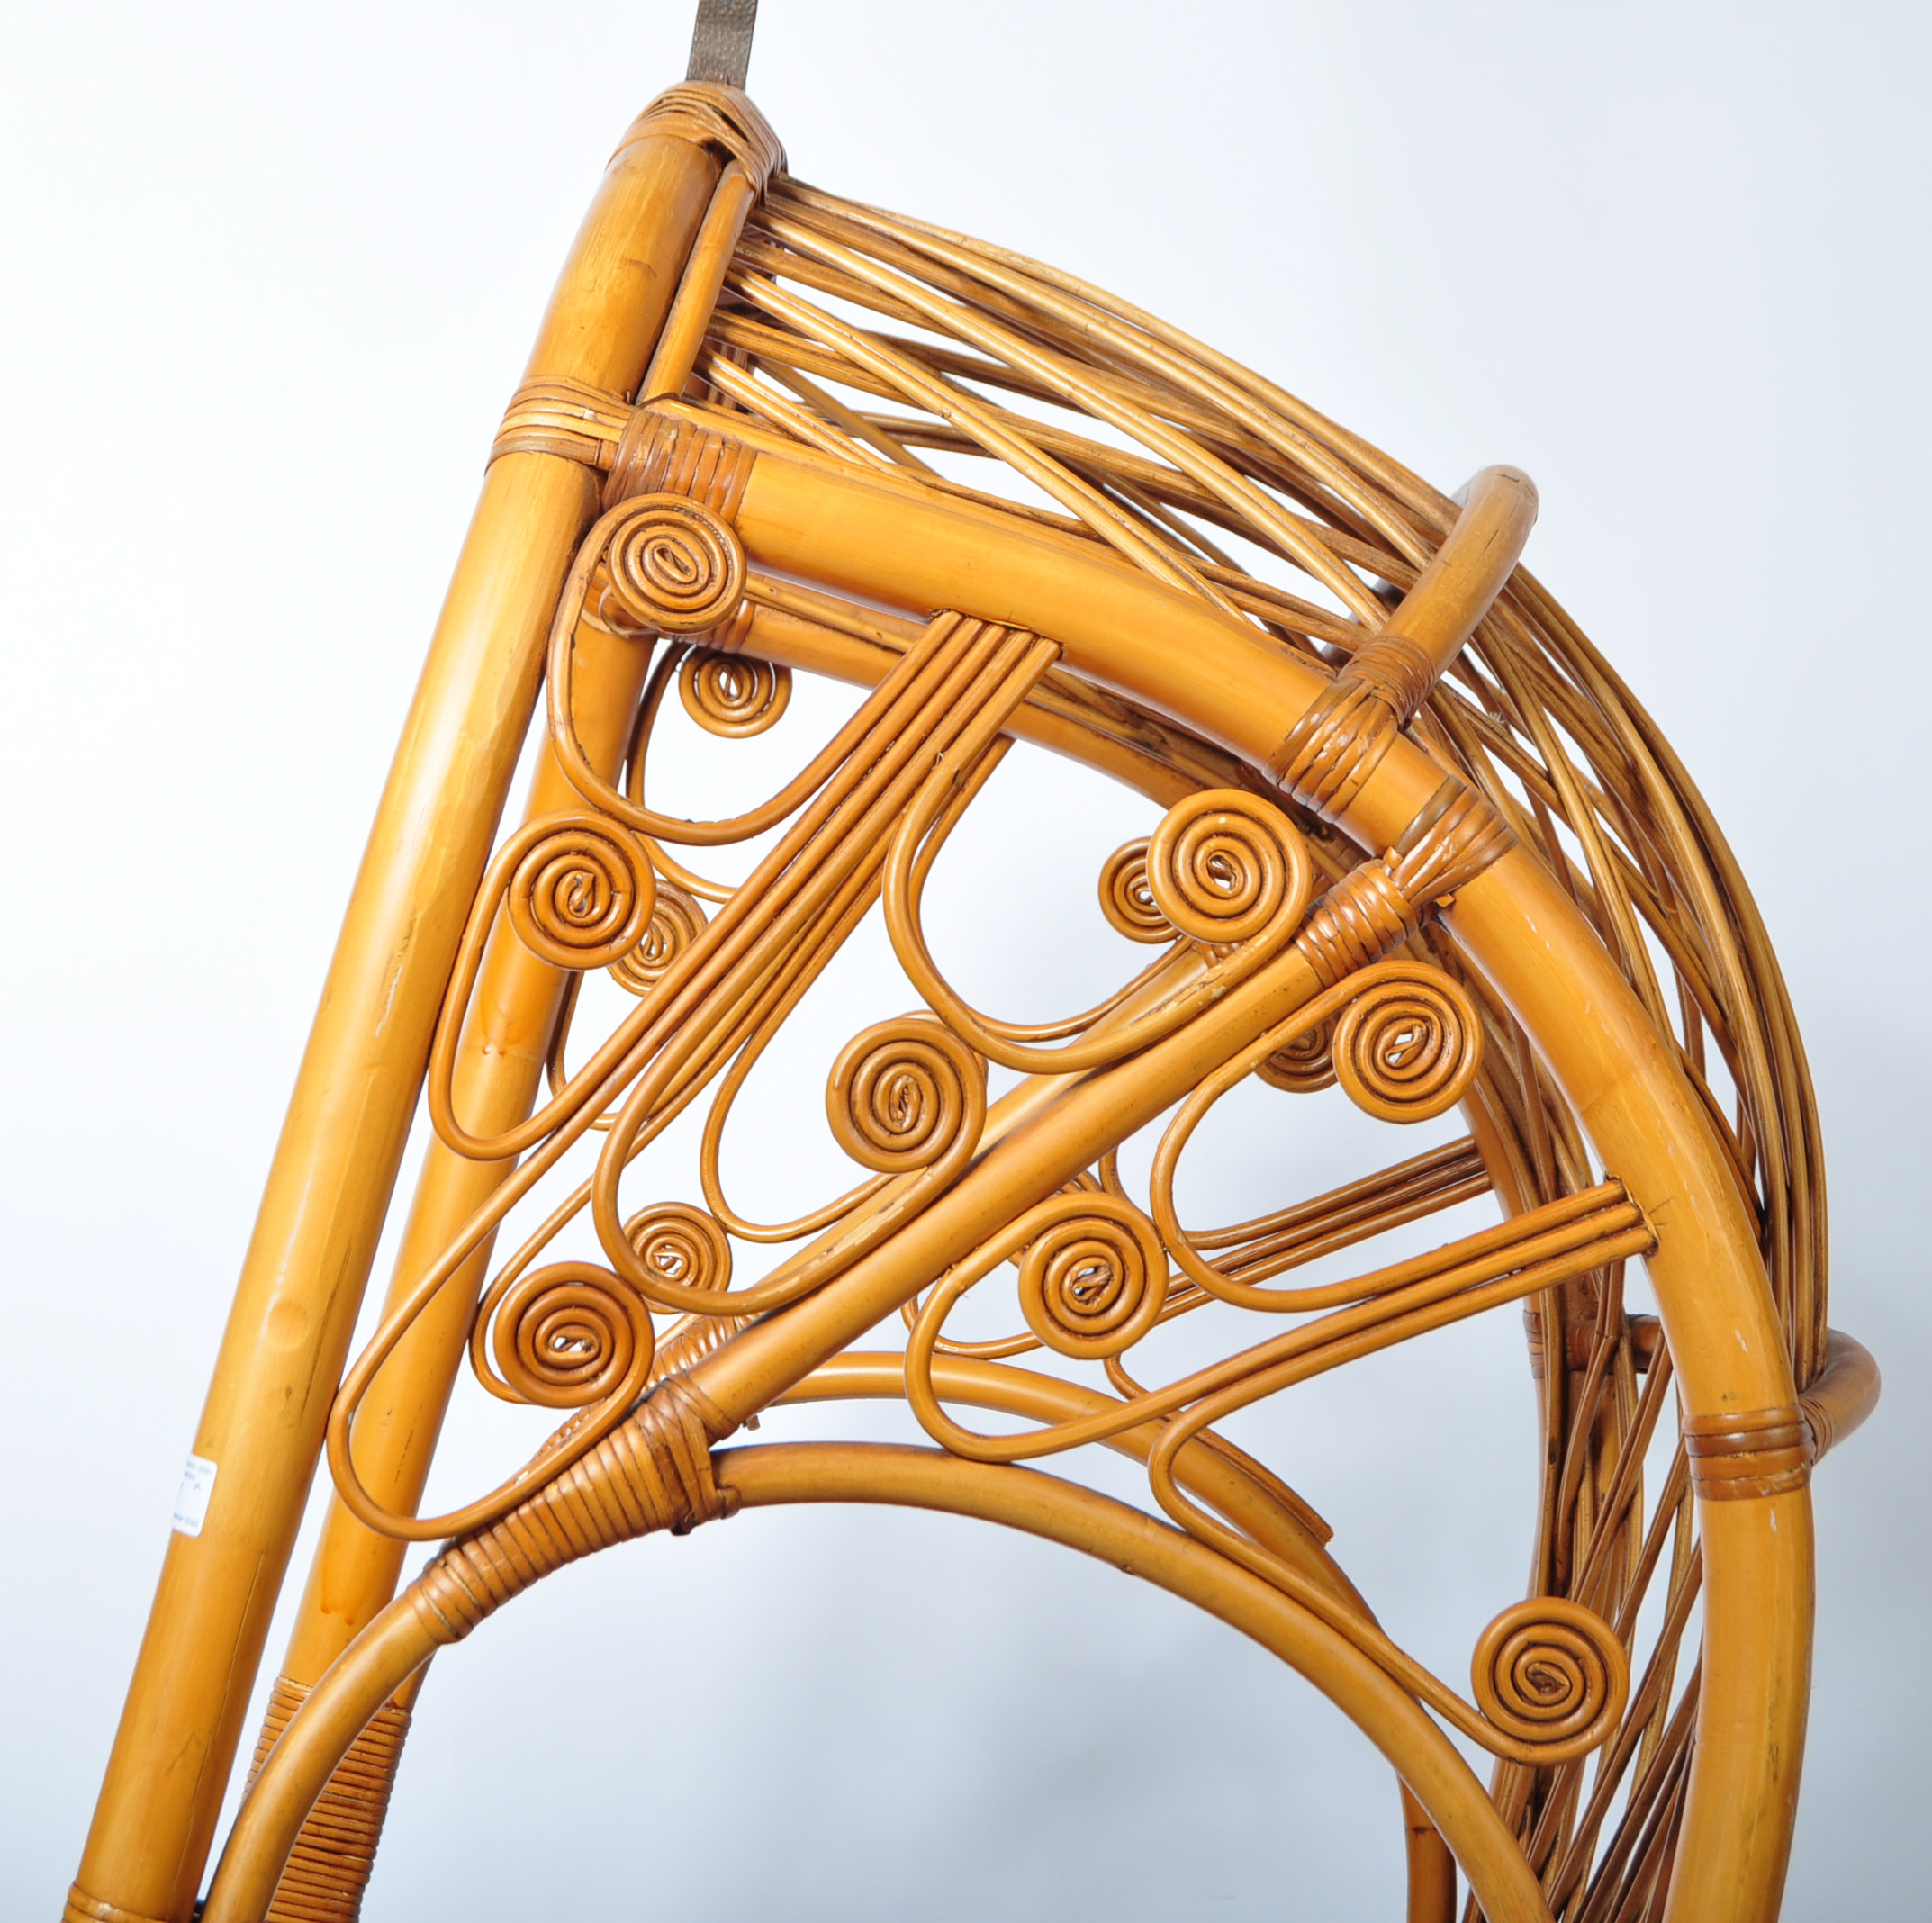 HANGING BASKET EGG SHAPED PENDULUM CHAIR OF WICKER CONSTRUCTION - Image 3 of 8